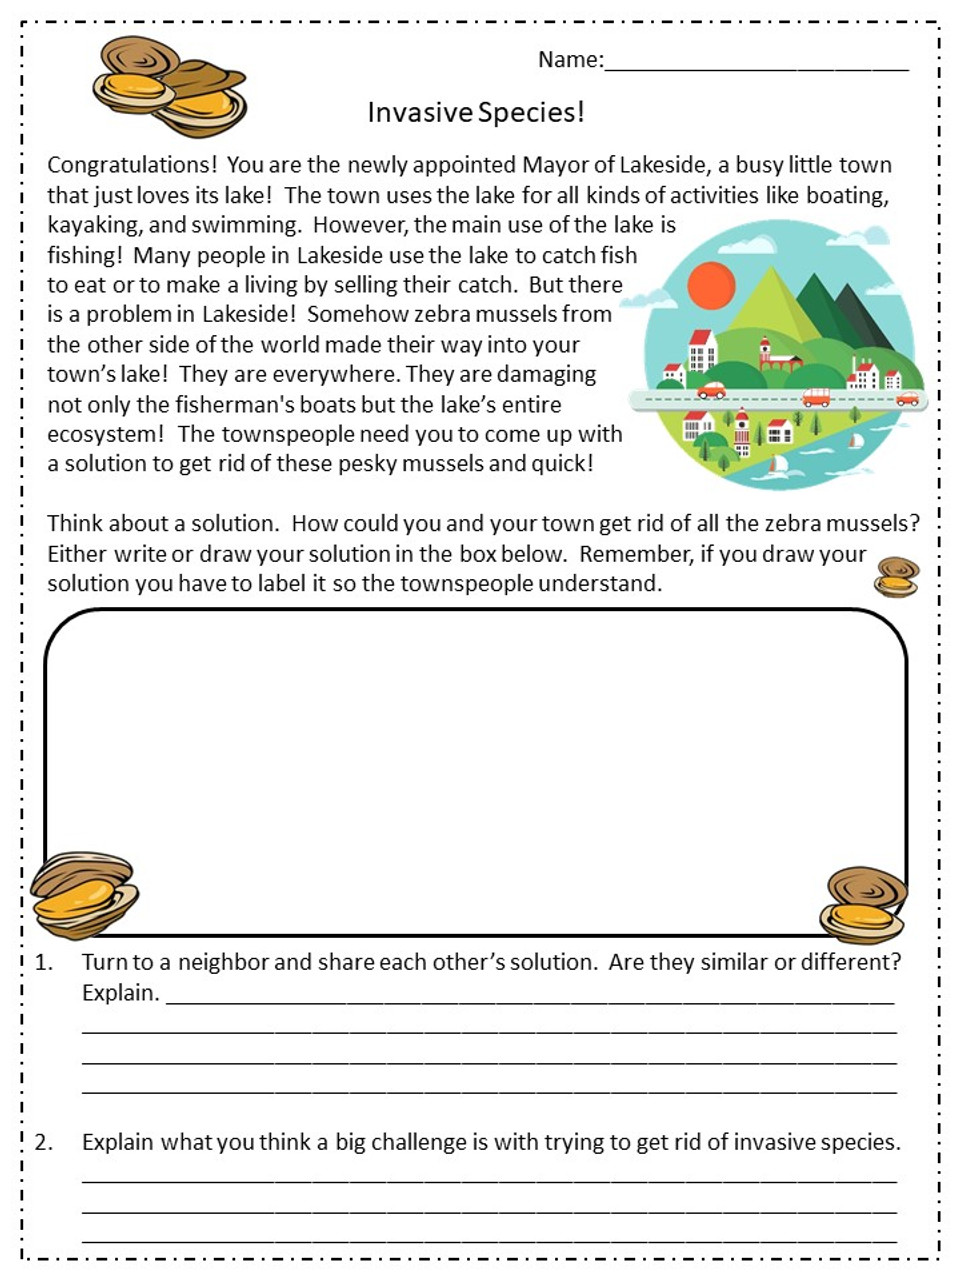 Students are then given an imaginative dilemma of zebra mussels invading their town. Students must work on finding a solution before paring up with a classmate to share their ideas.